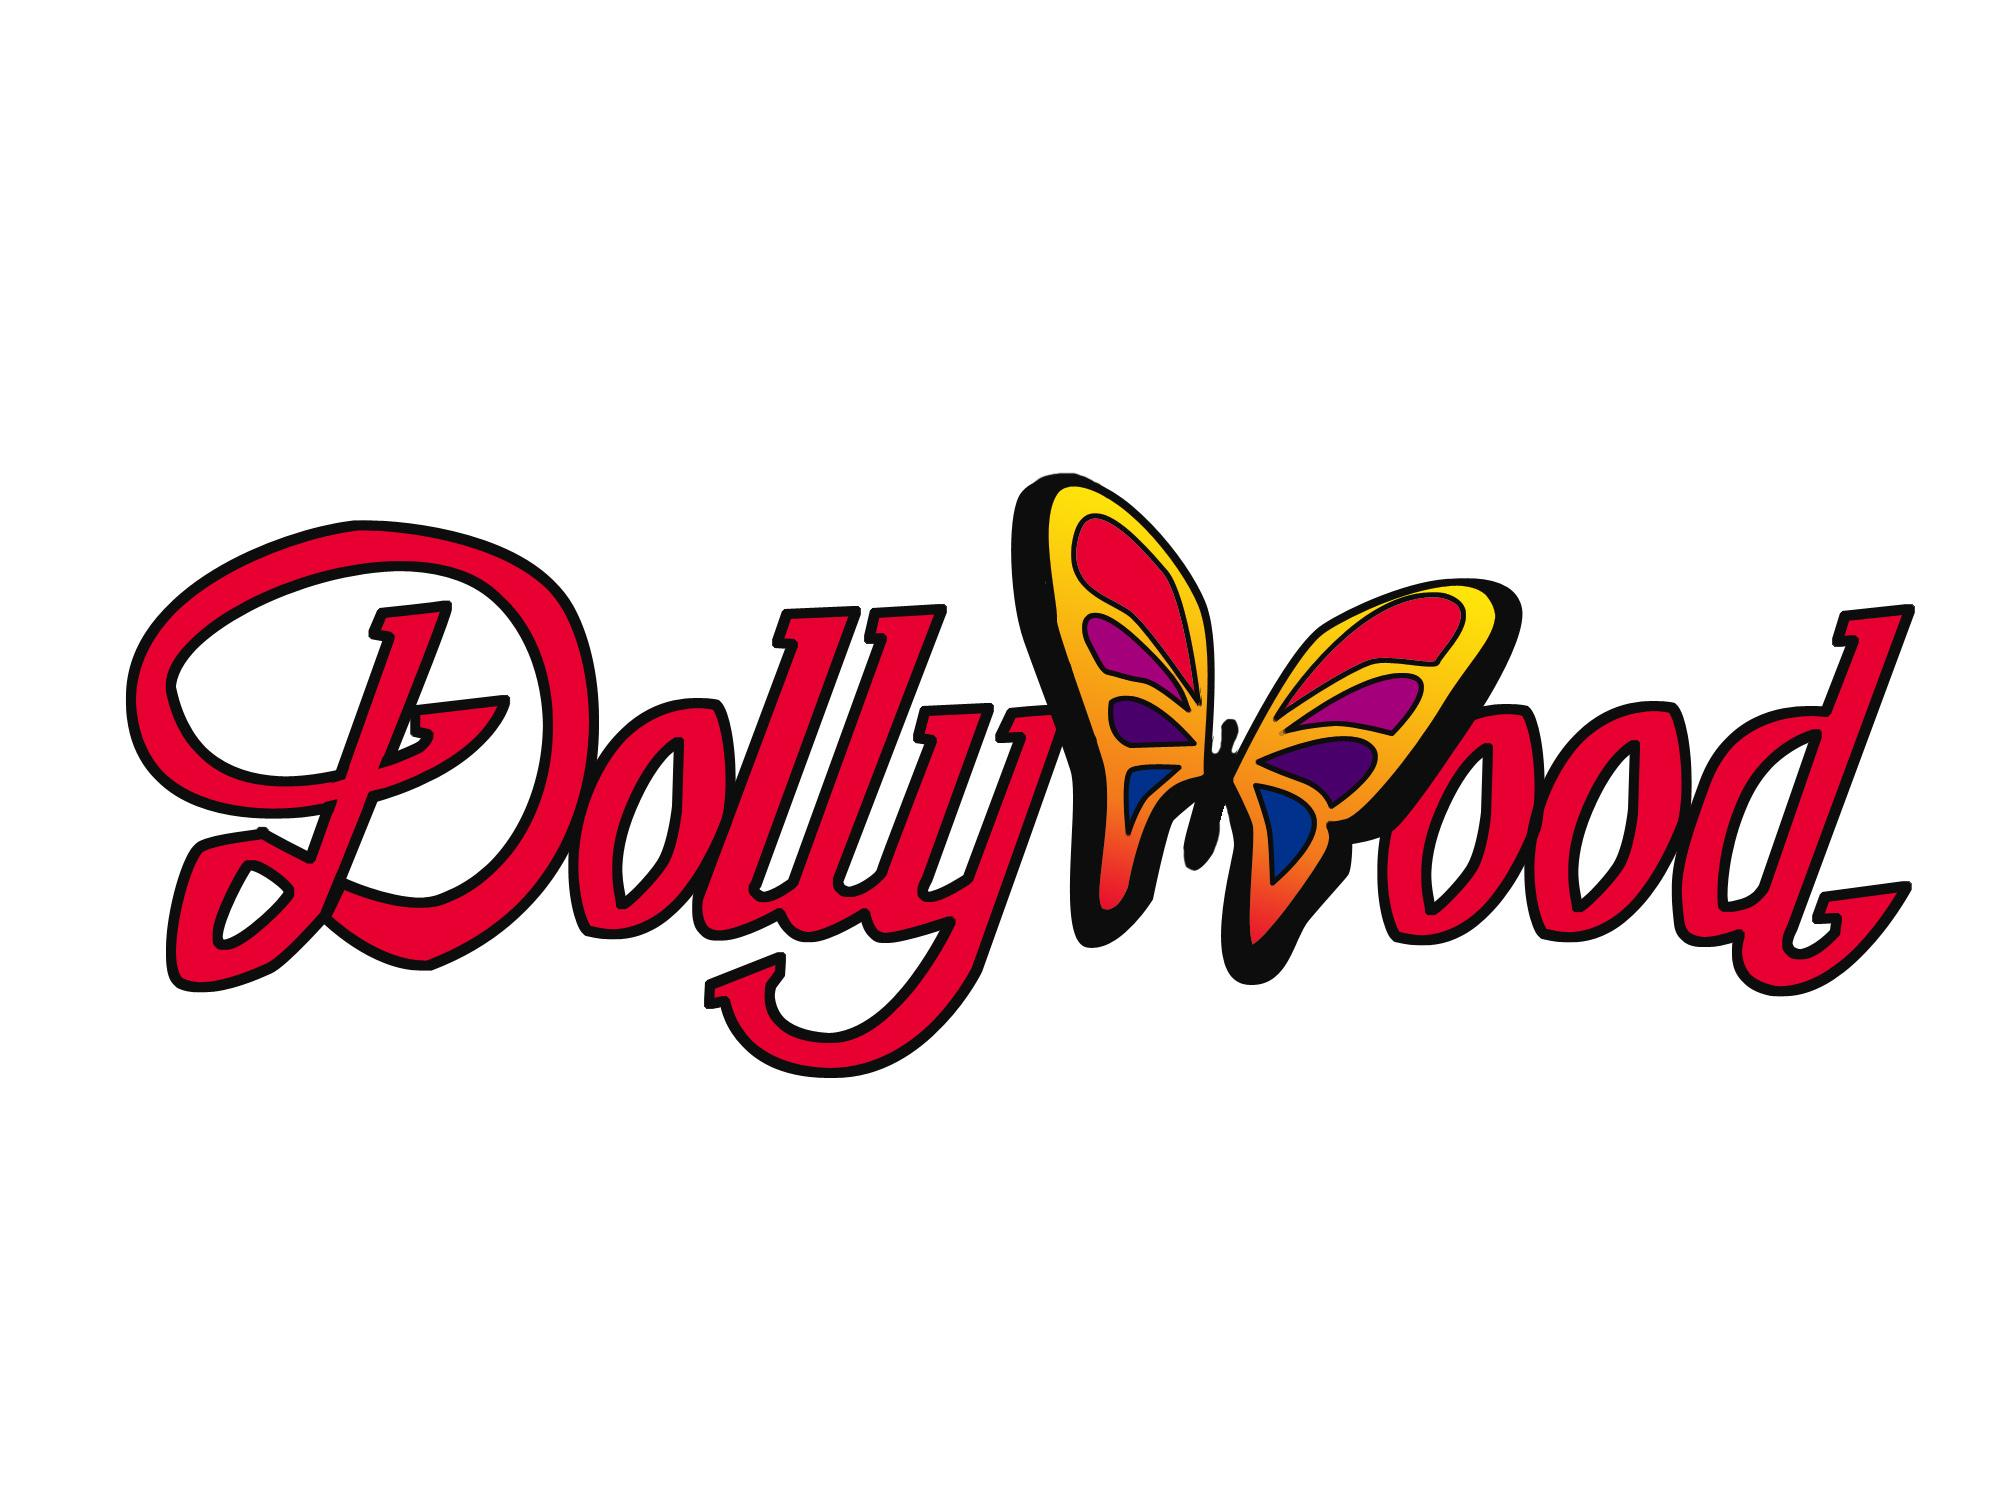 Dollywood plans to build new resort in Pigeon Forge